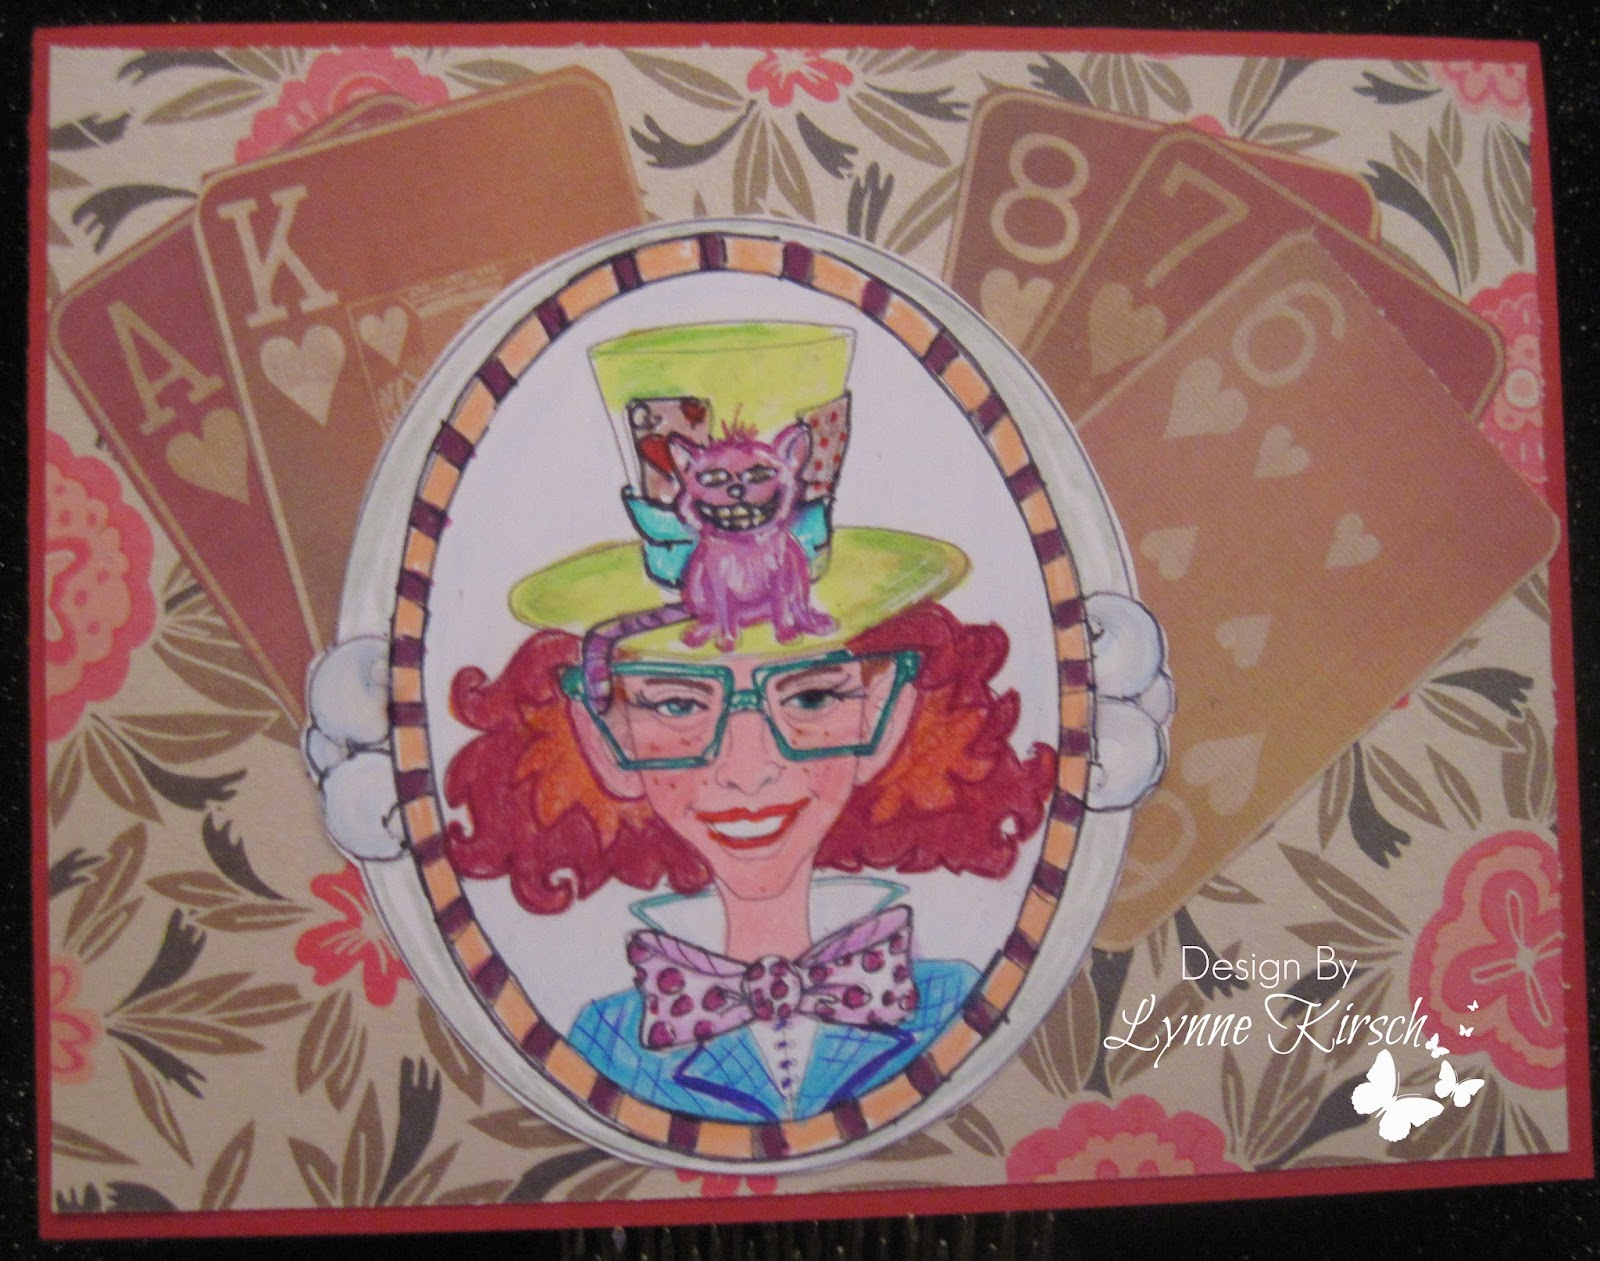 Her Craftiness Dear Friend With The Mad Hatter For A New